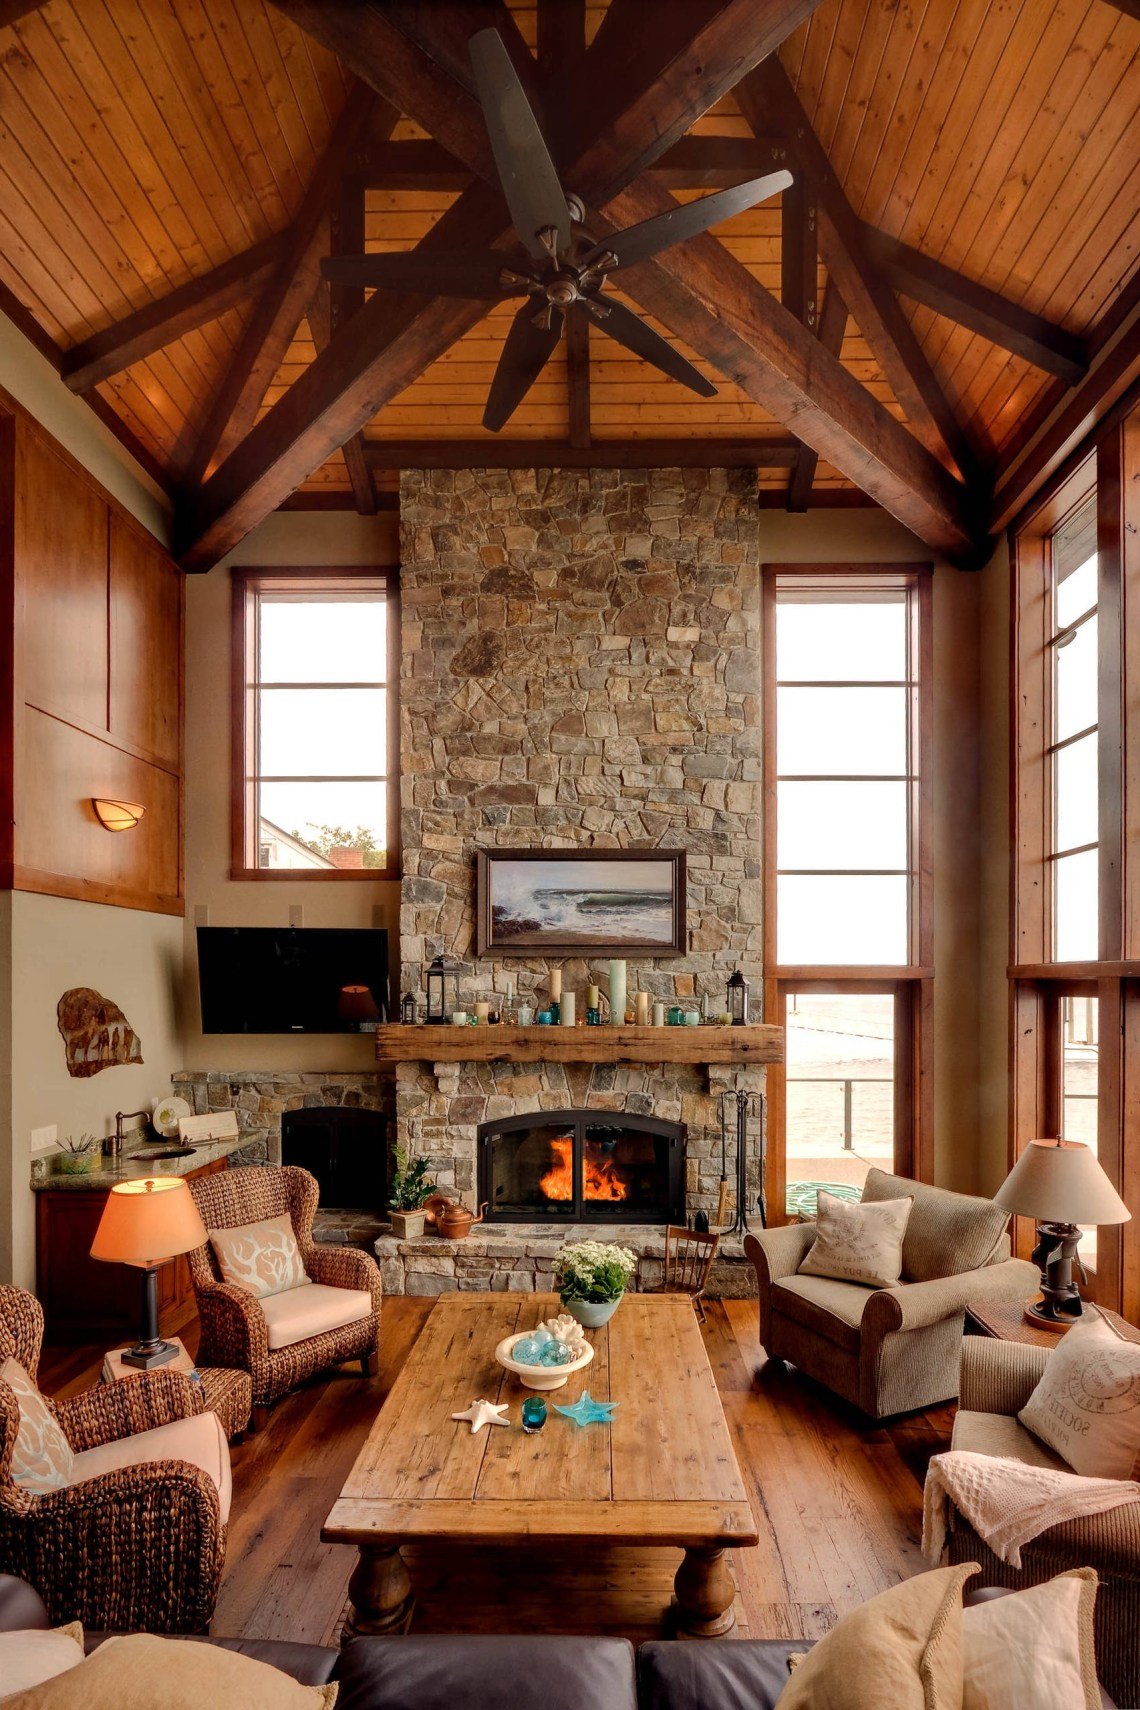 16 Sophisticated Rustic Living Room Designs You Wont Turn